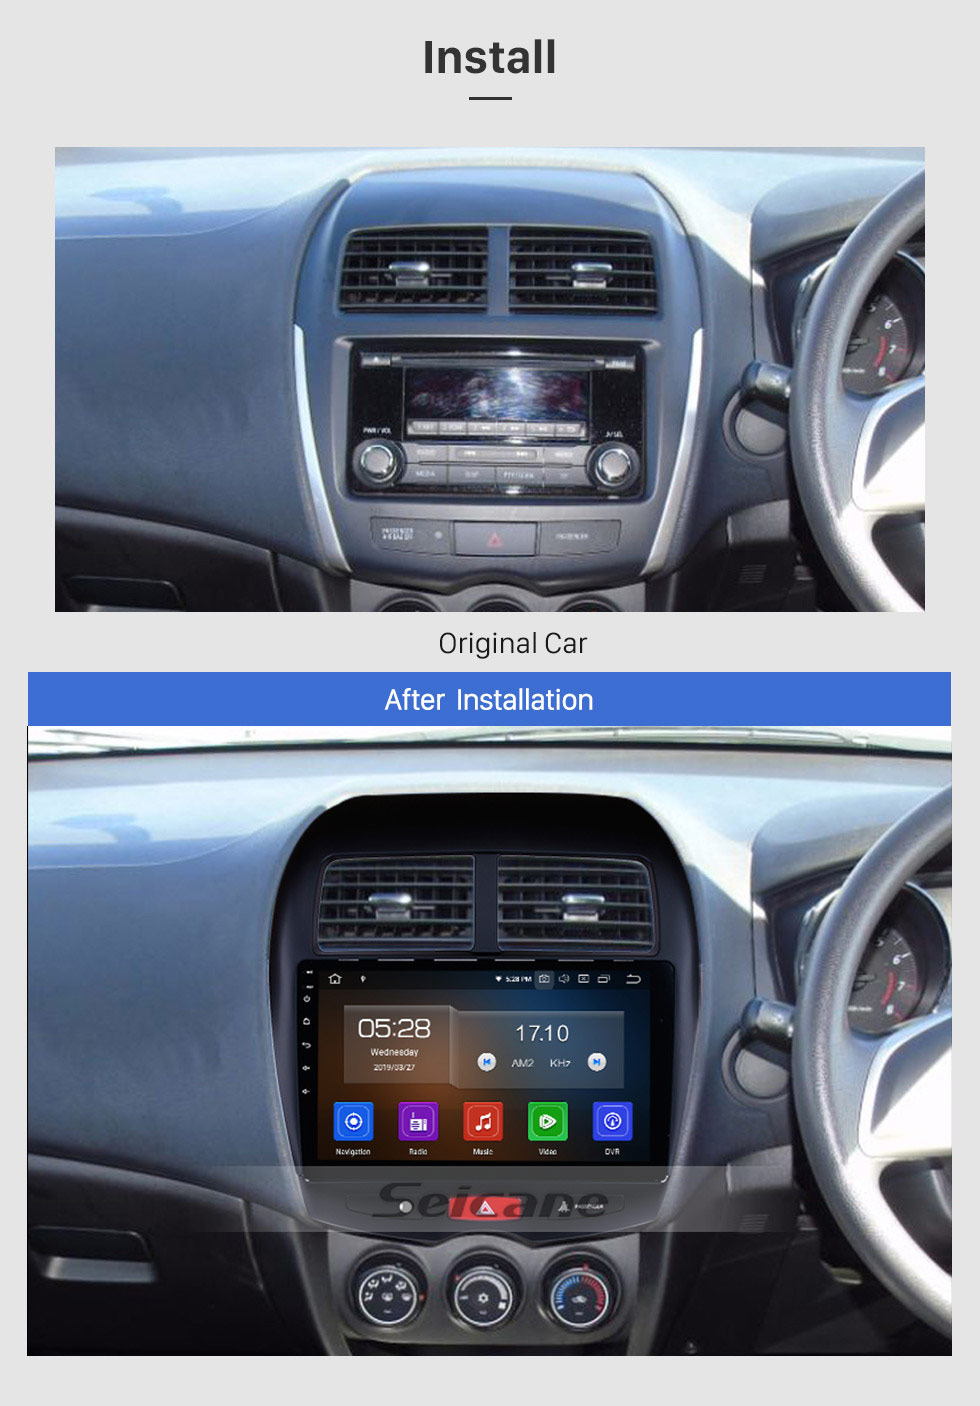 Seicane 10.1 Inch HD Touchscreen Radio Android 9.0 Head Unit For 2010-2012 2013-2015 Mitsubishi ASX Car Stereo GPS Navigation System Bluetooth Phone WIFI Support Mirror Link OBDII DVR Steering Wheel Control USB